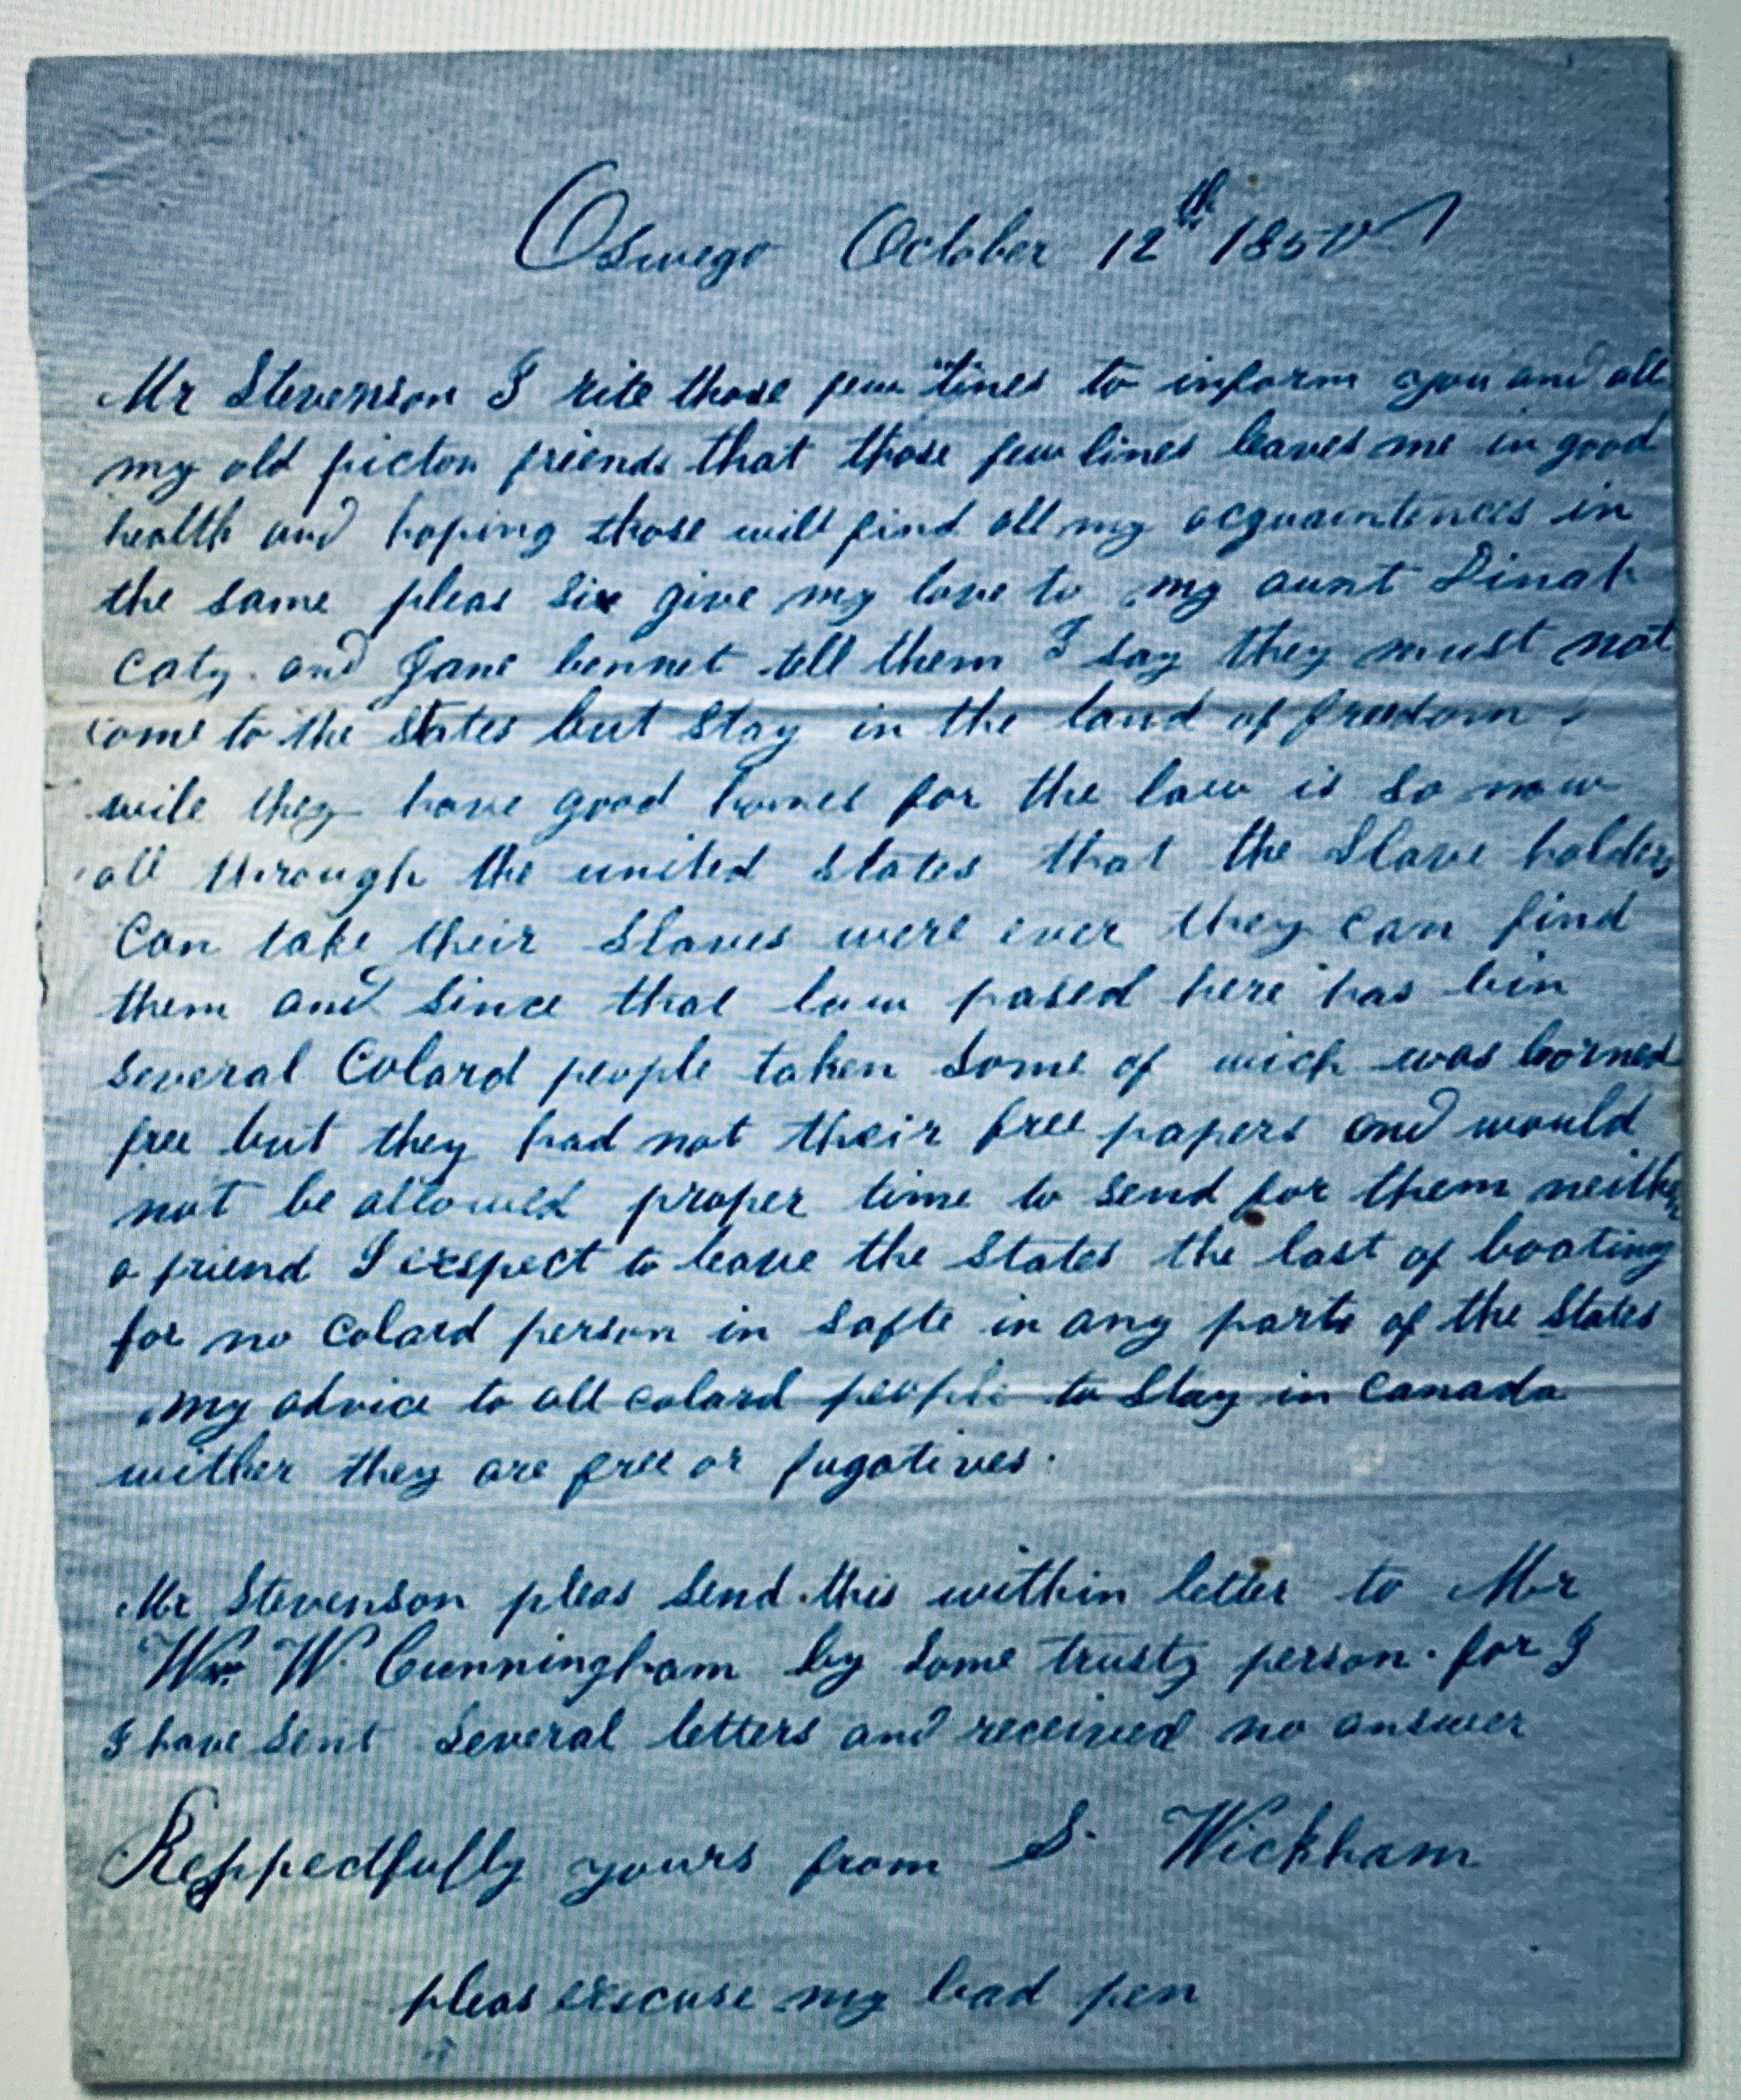 19th century handwritten letter about slave catchers